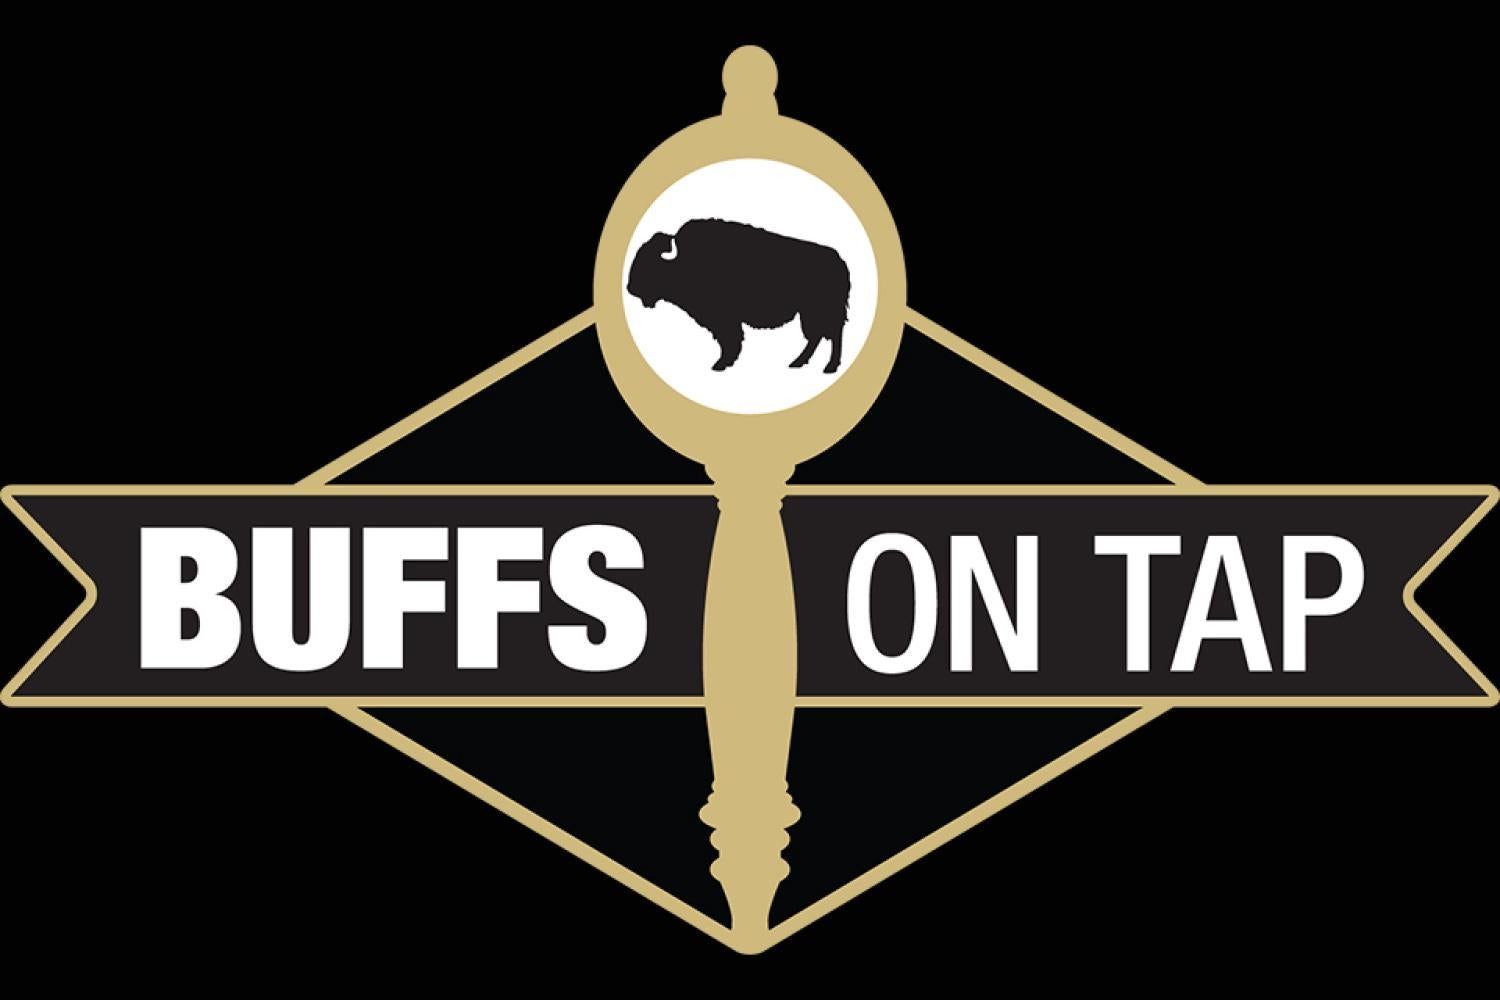 Buffs on Tap is coming to Denver!